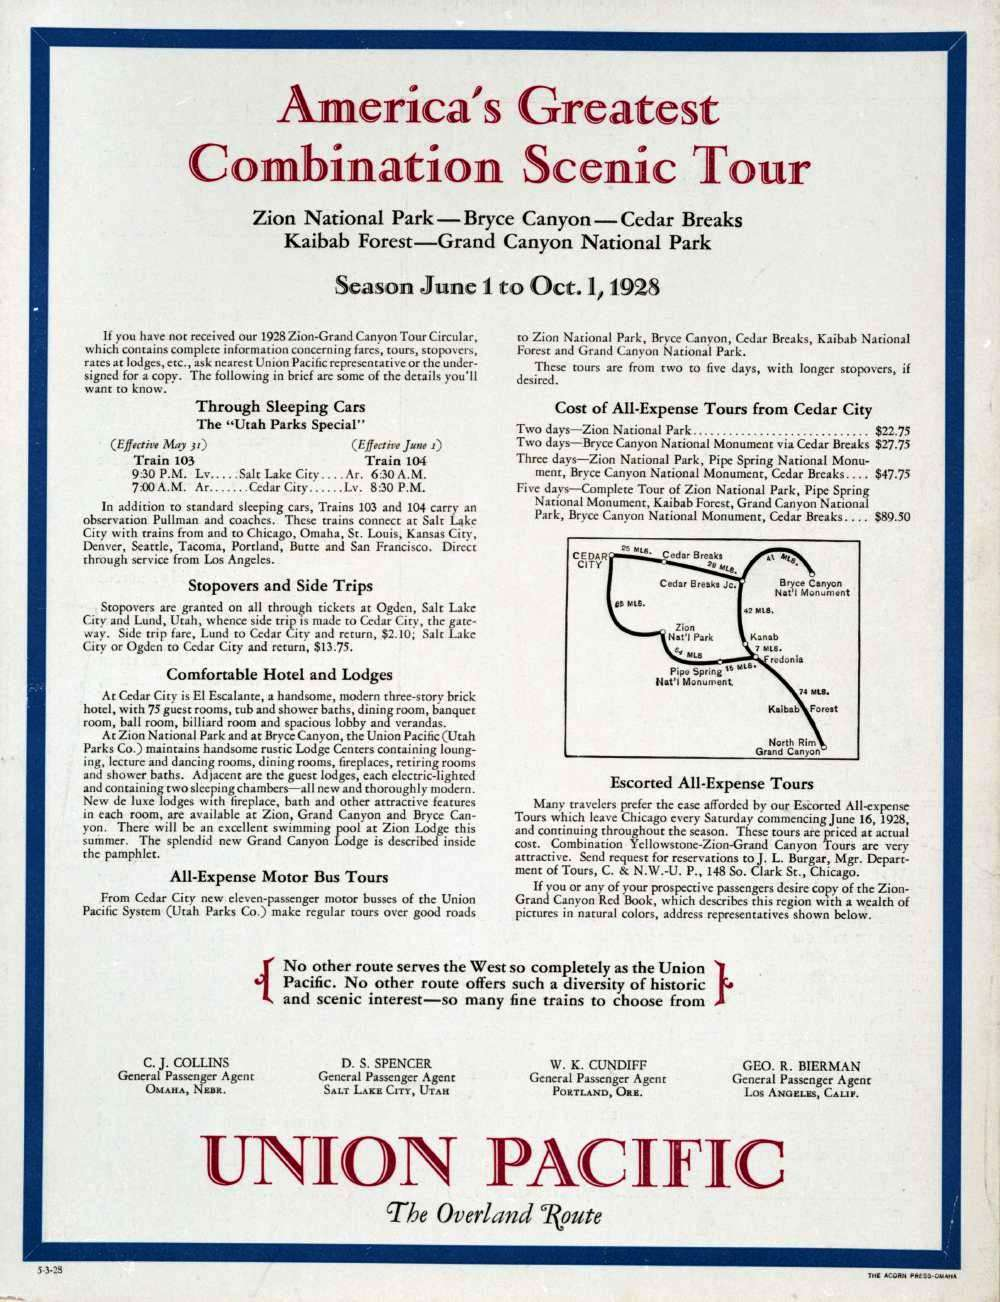 Union Pacific Overland Route Advertisement